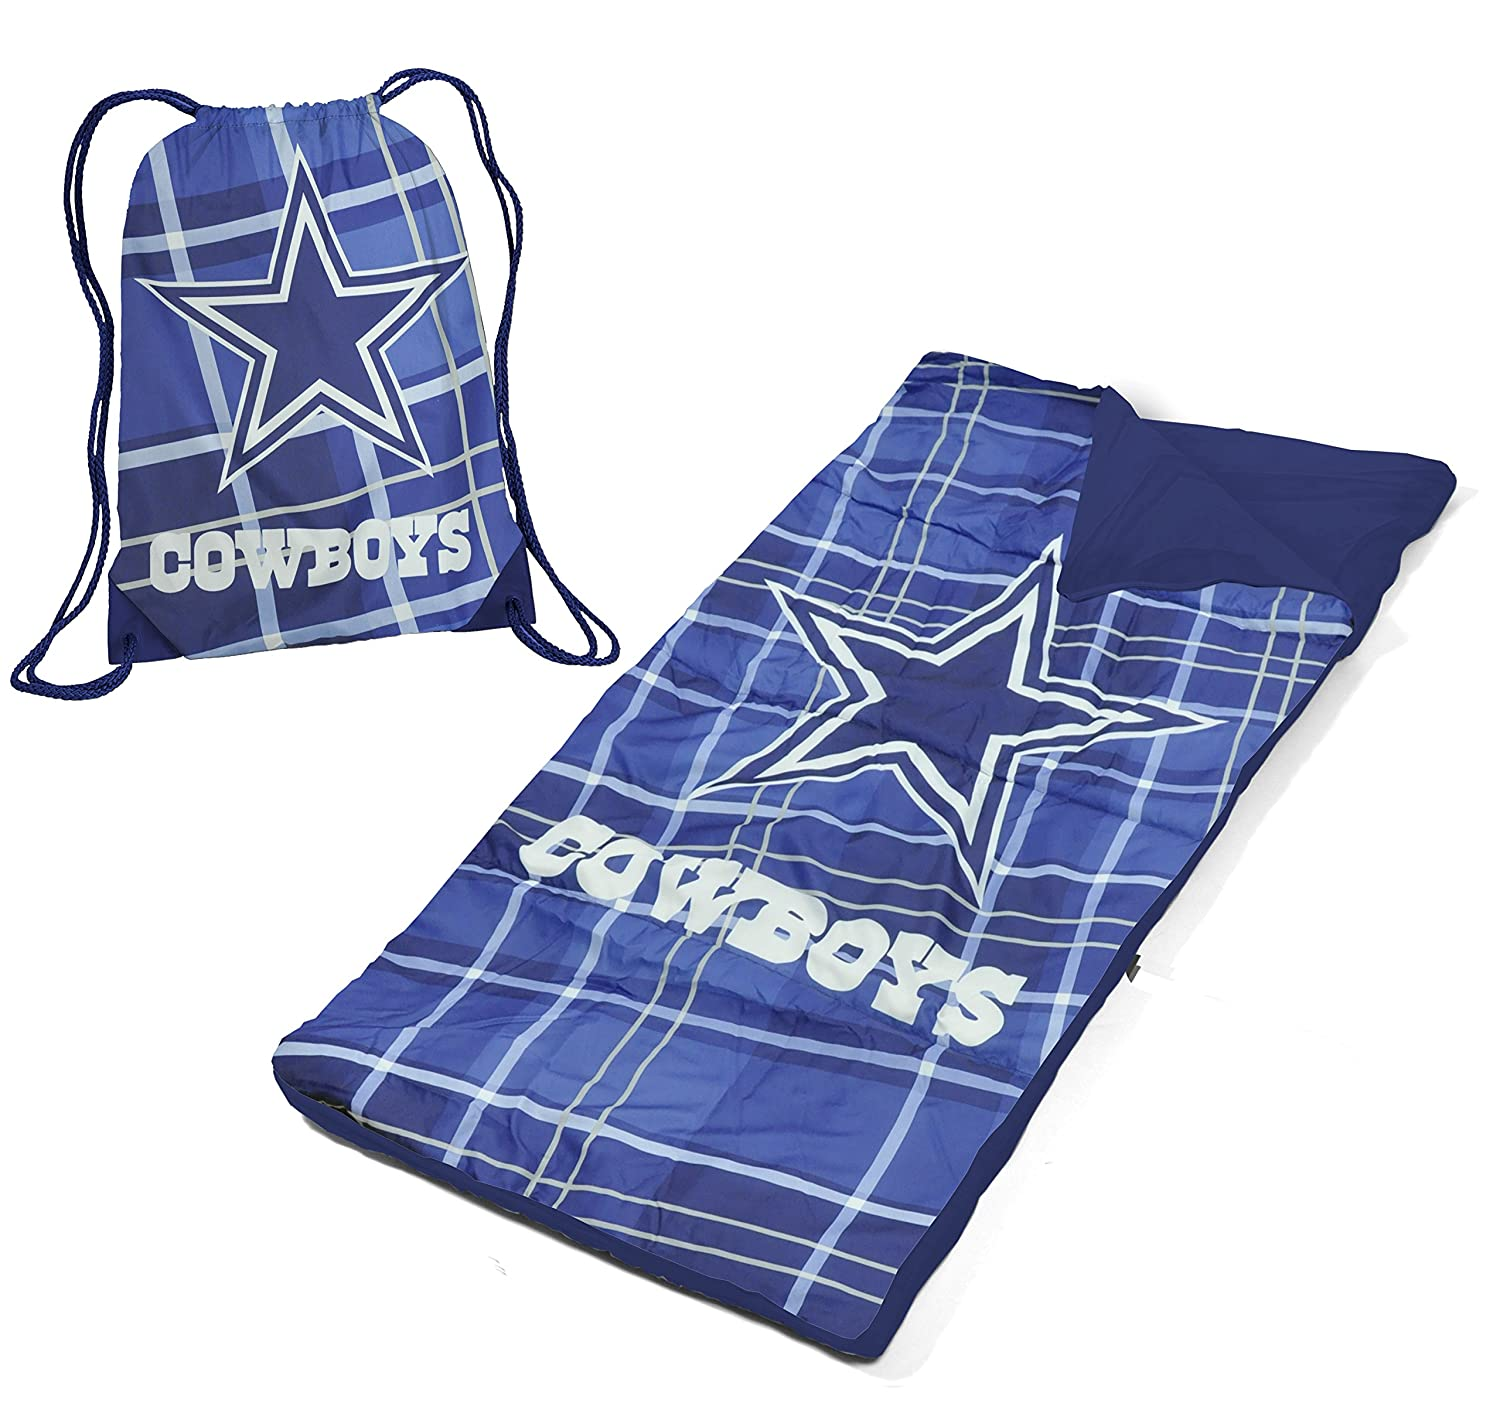 NFL Dallas Cowboys Drawstring Bag with Sleeping Sack Idea Nuova - LA NK980274